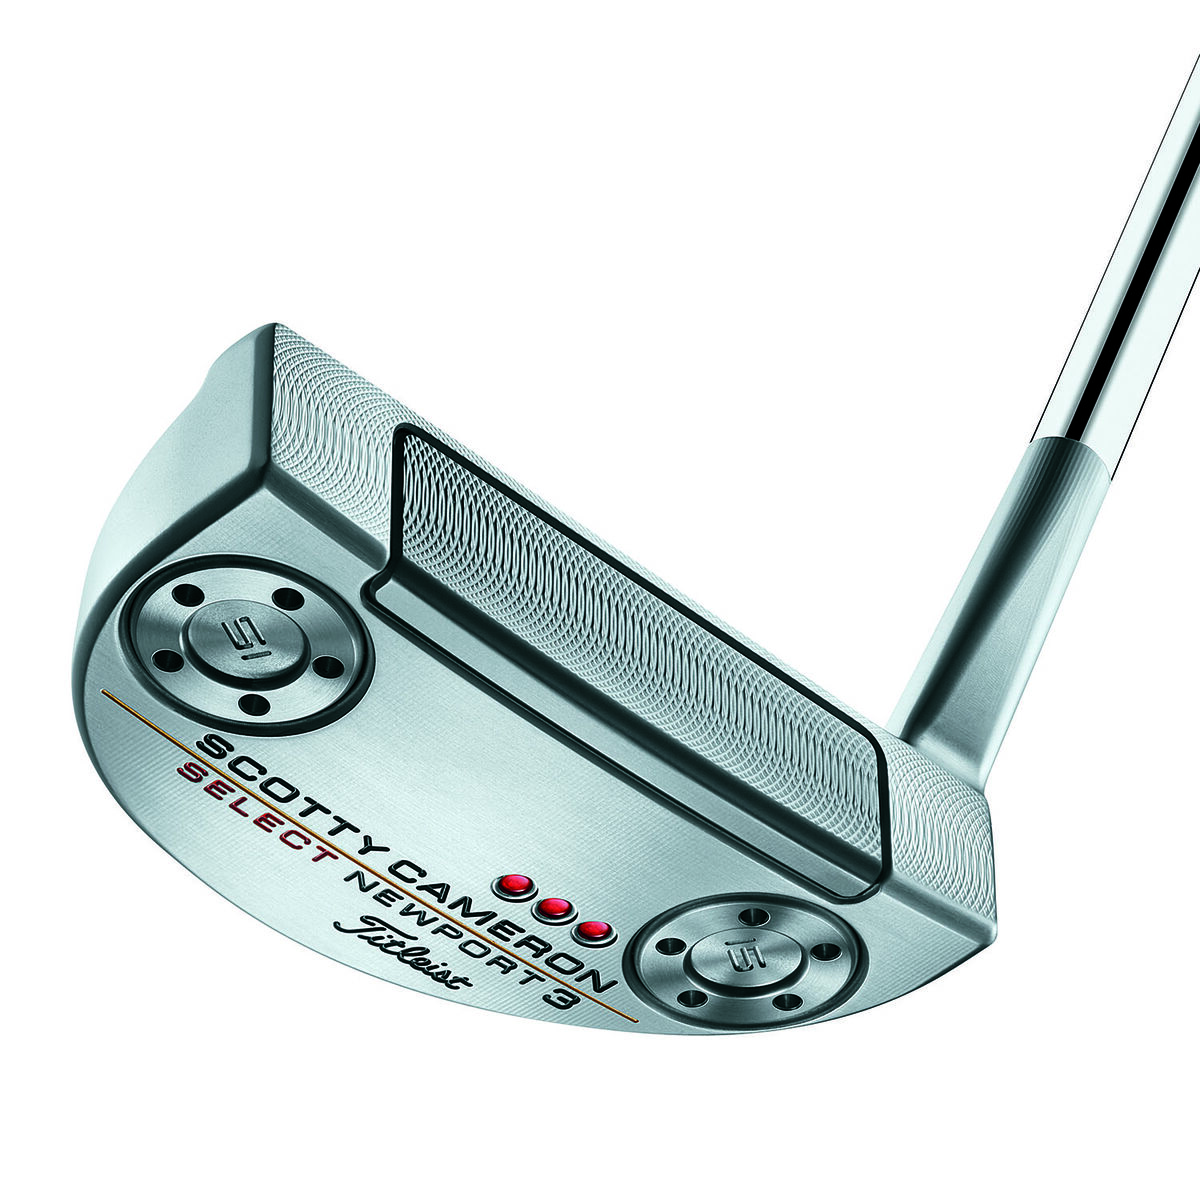 Putter Titleist Cameron Select Newport 3